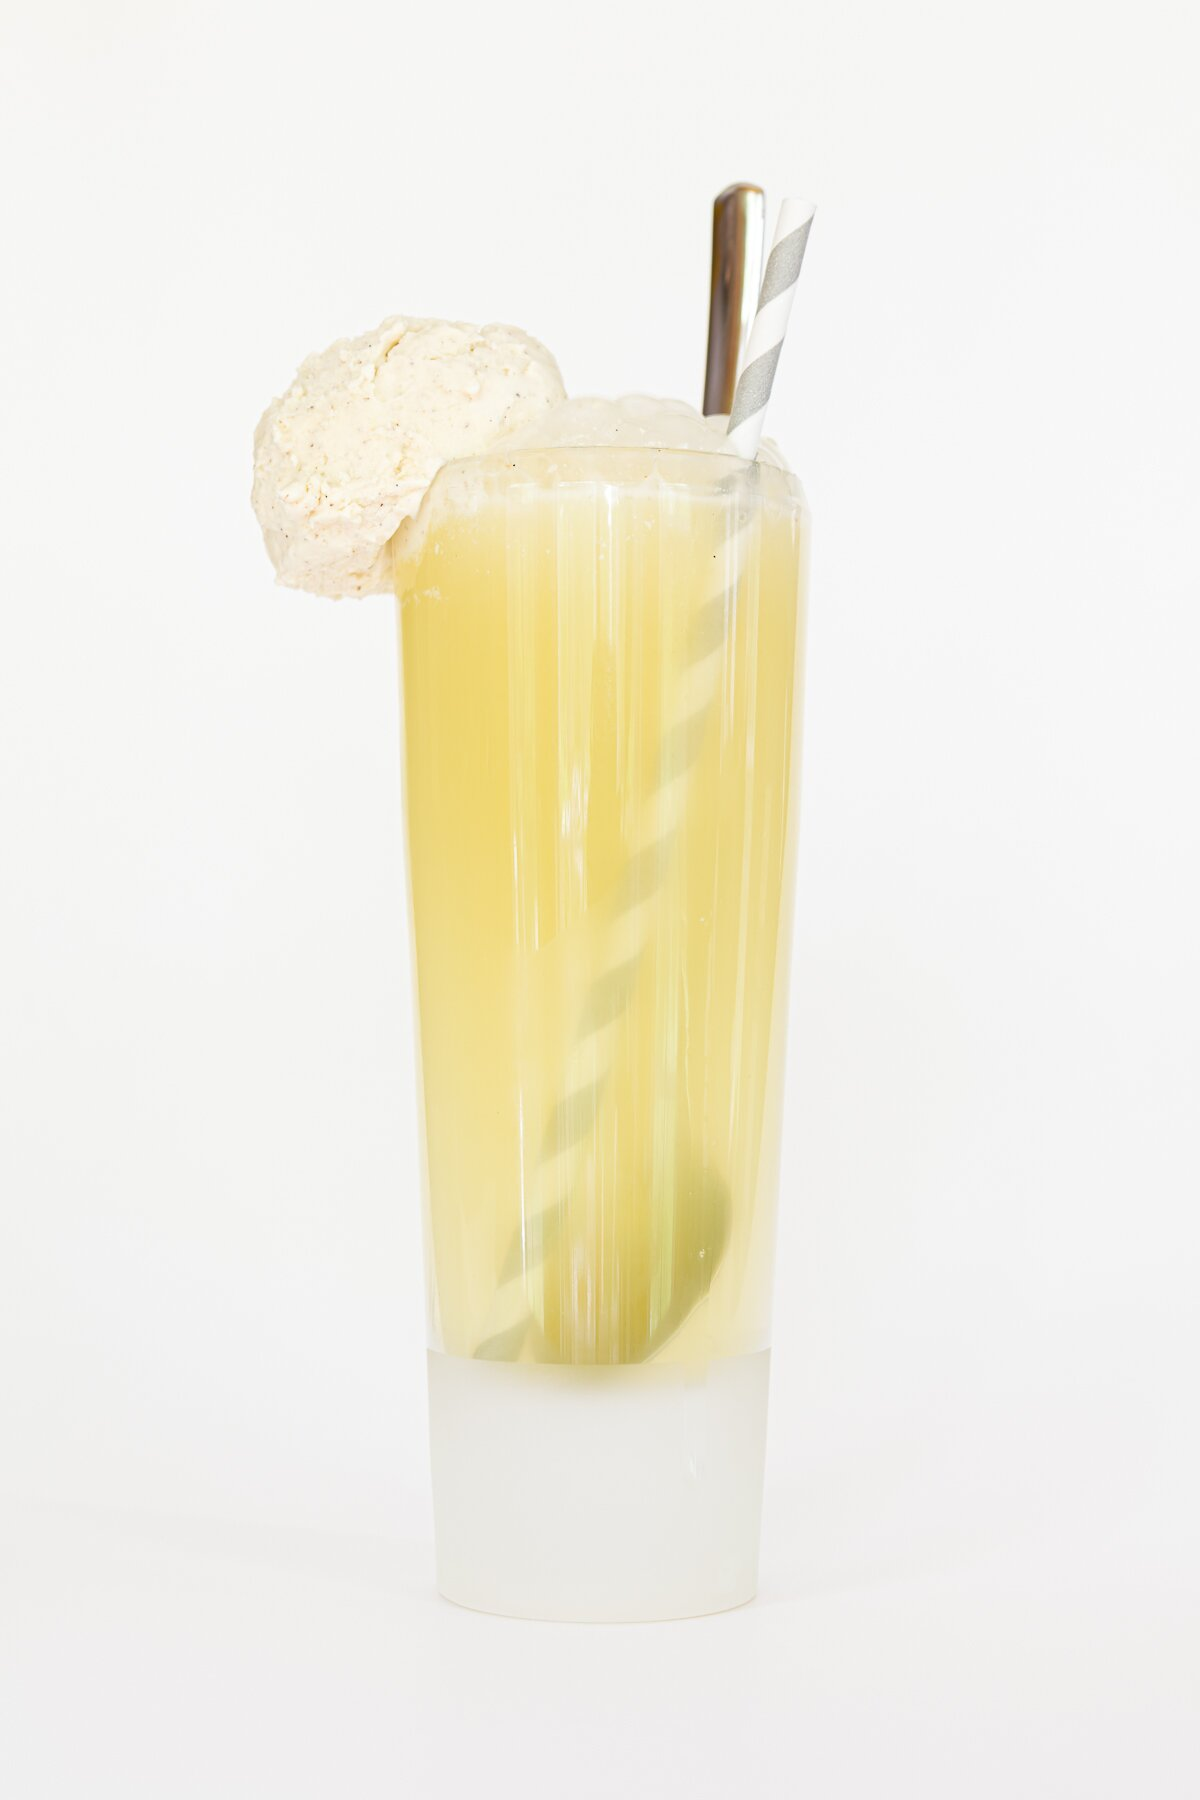 head-on view of a limoncello float in a tall glass with ice cream on the rim, served with a spoon and paper straw